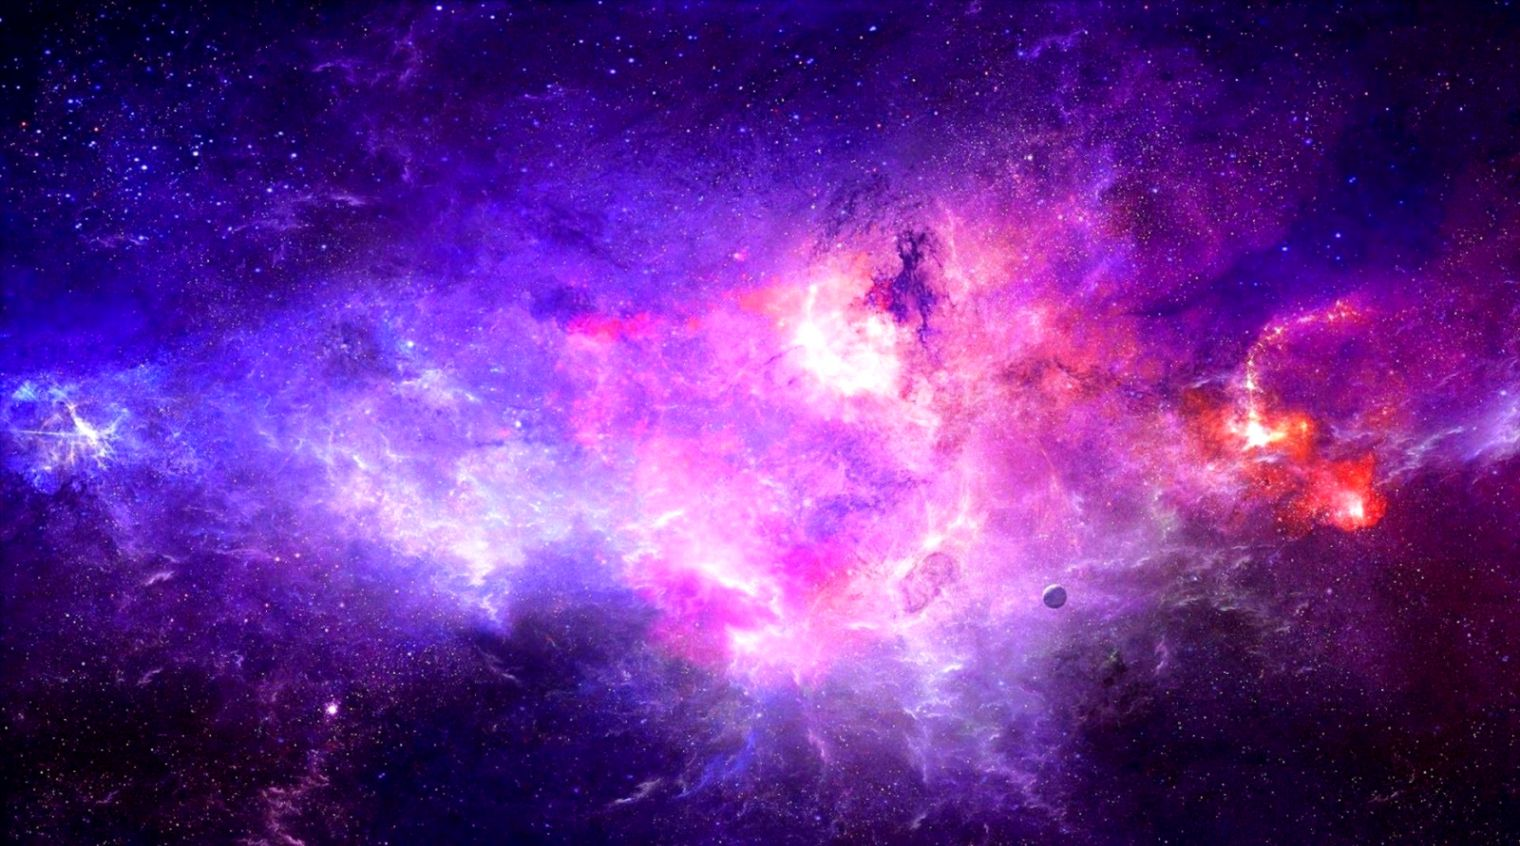 Purple Galaxy wallpaper wp60011193 live wallpaper HD Desktop